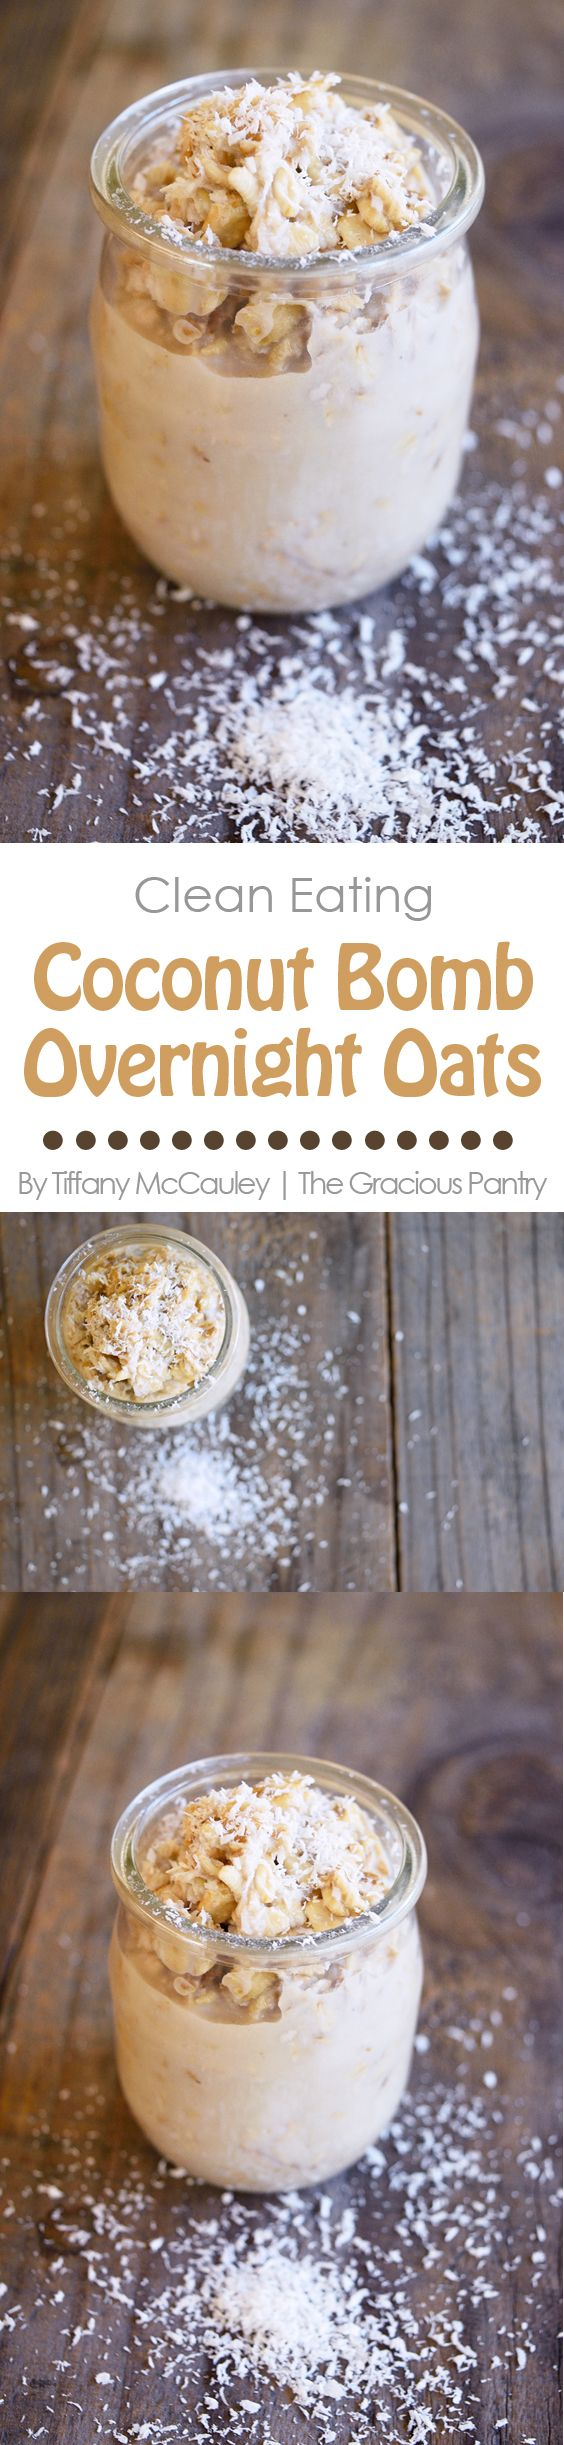 Clean Eating Overnight Oatmeal Recipes | Overnight Oats